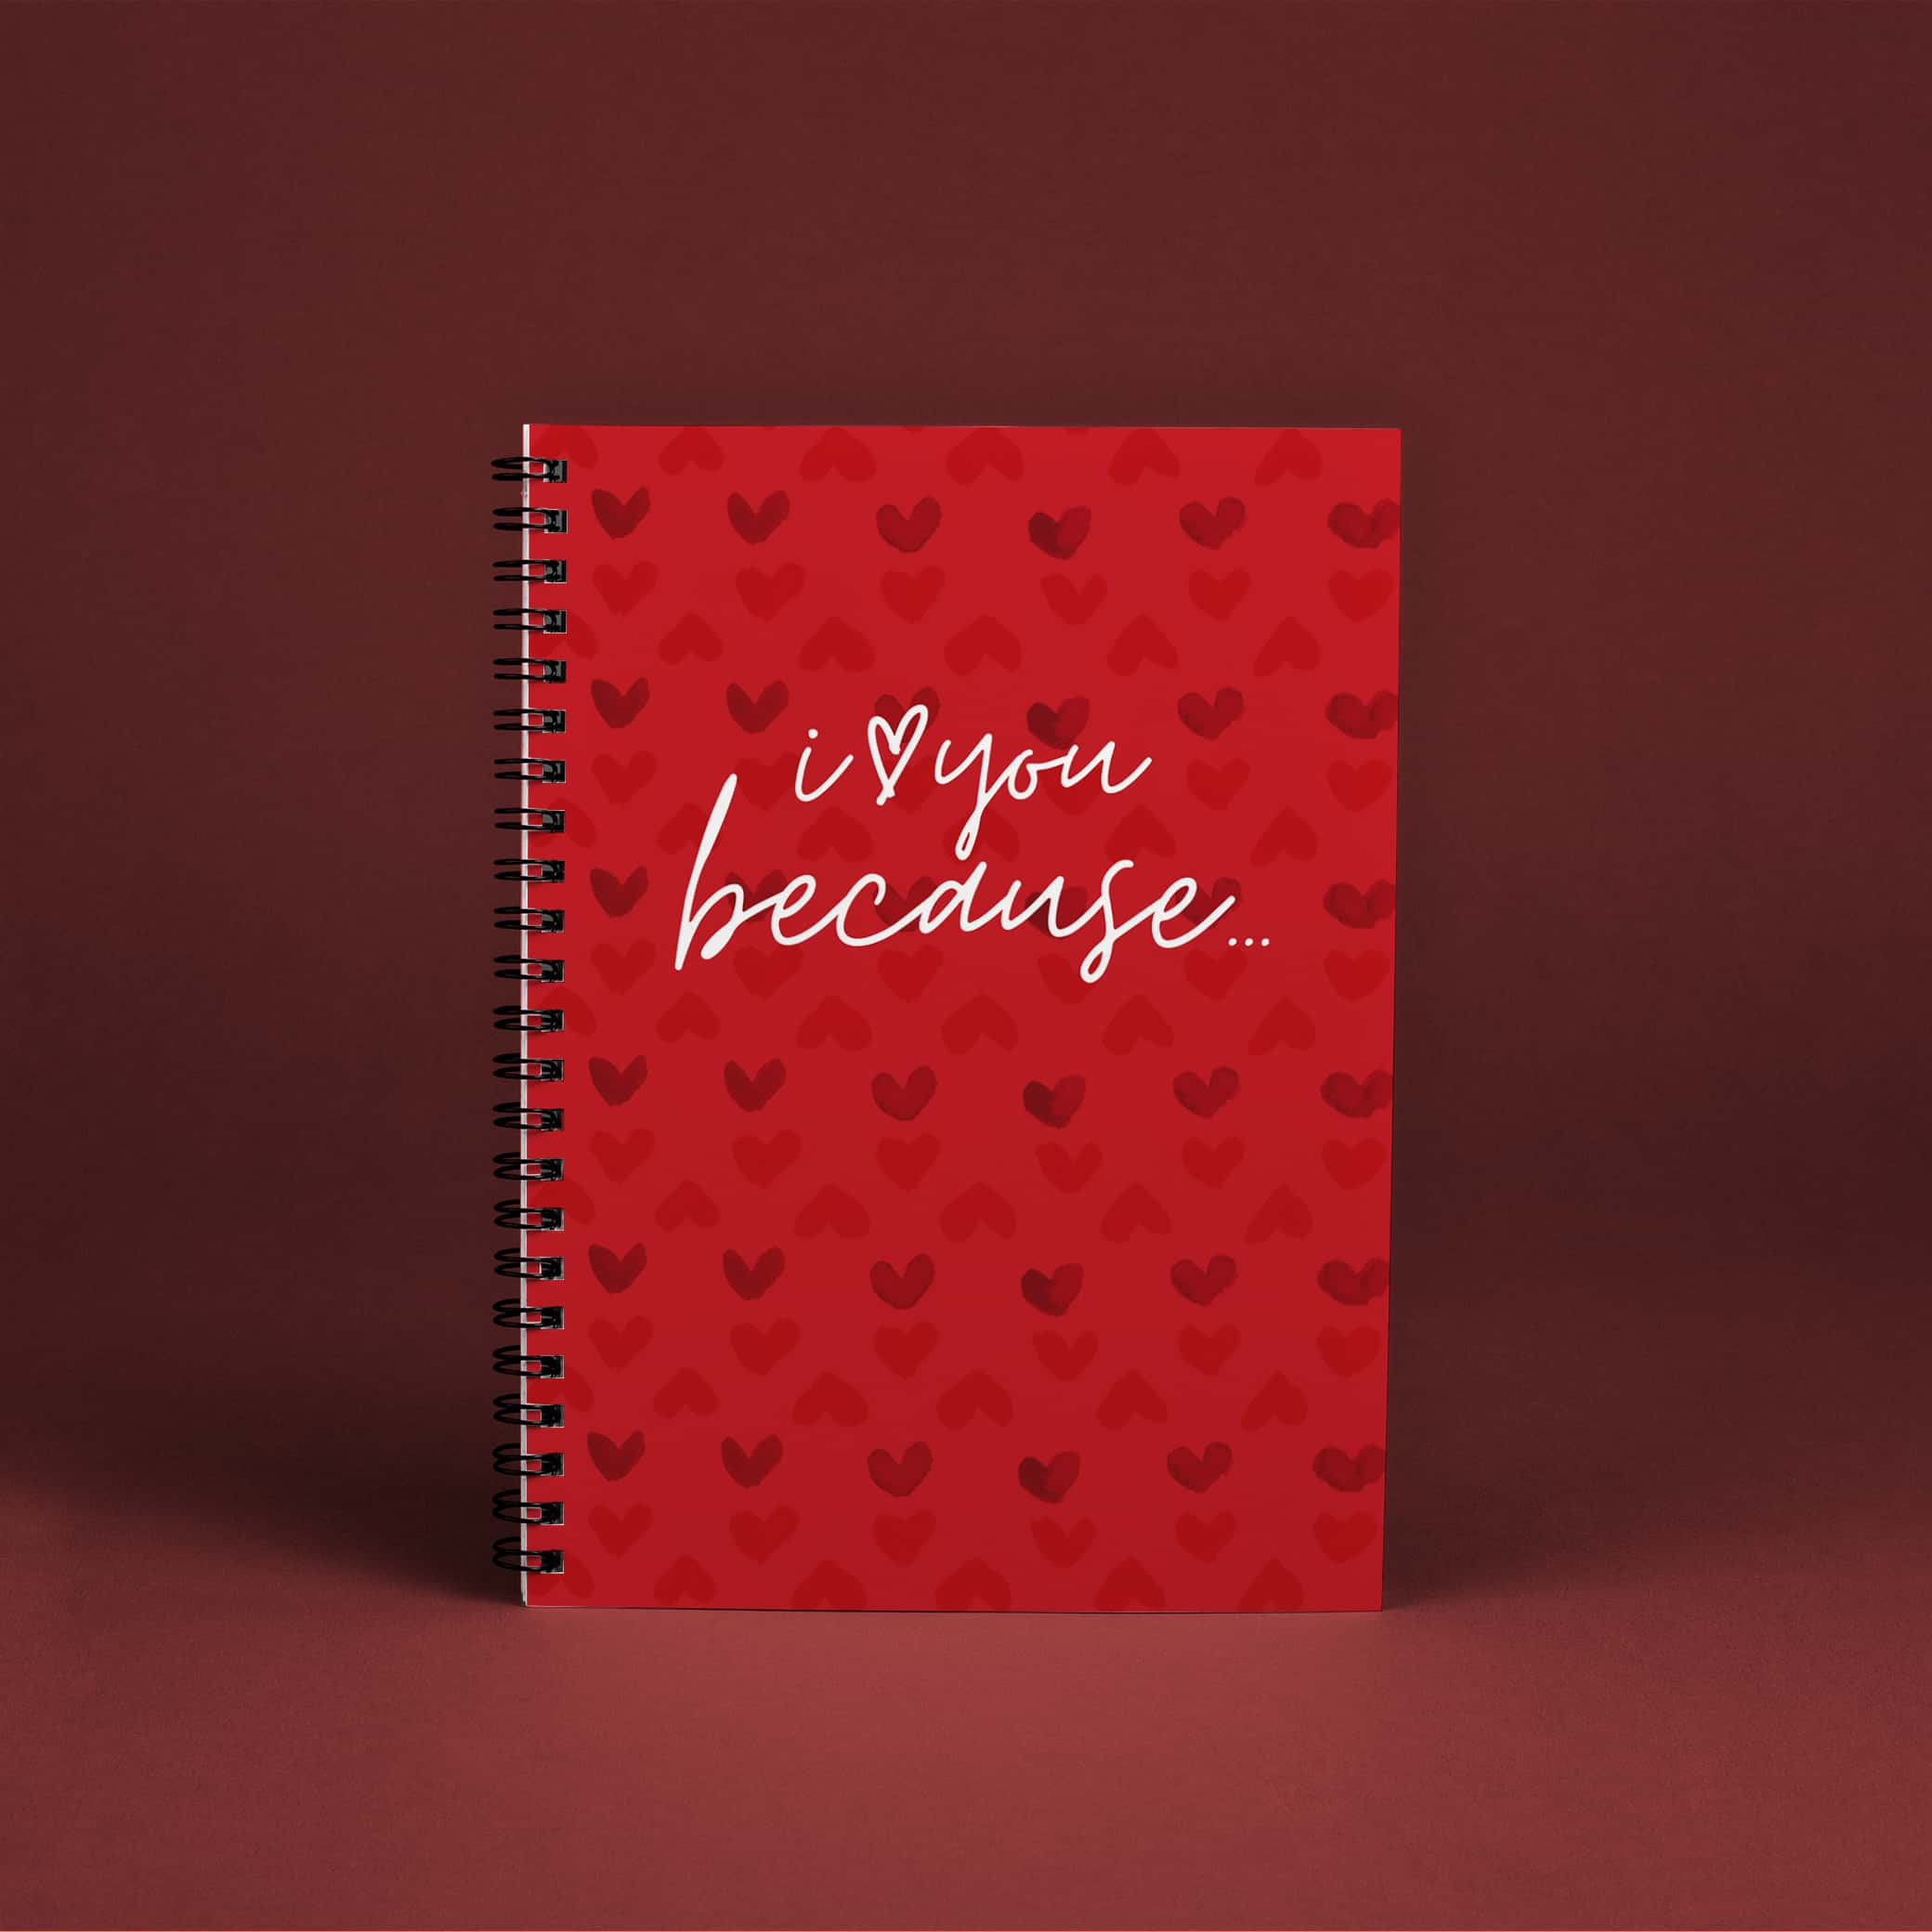 I Love You Because Spiral Notebook